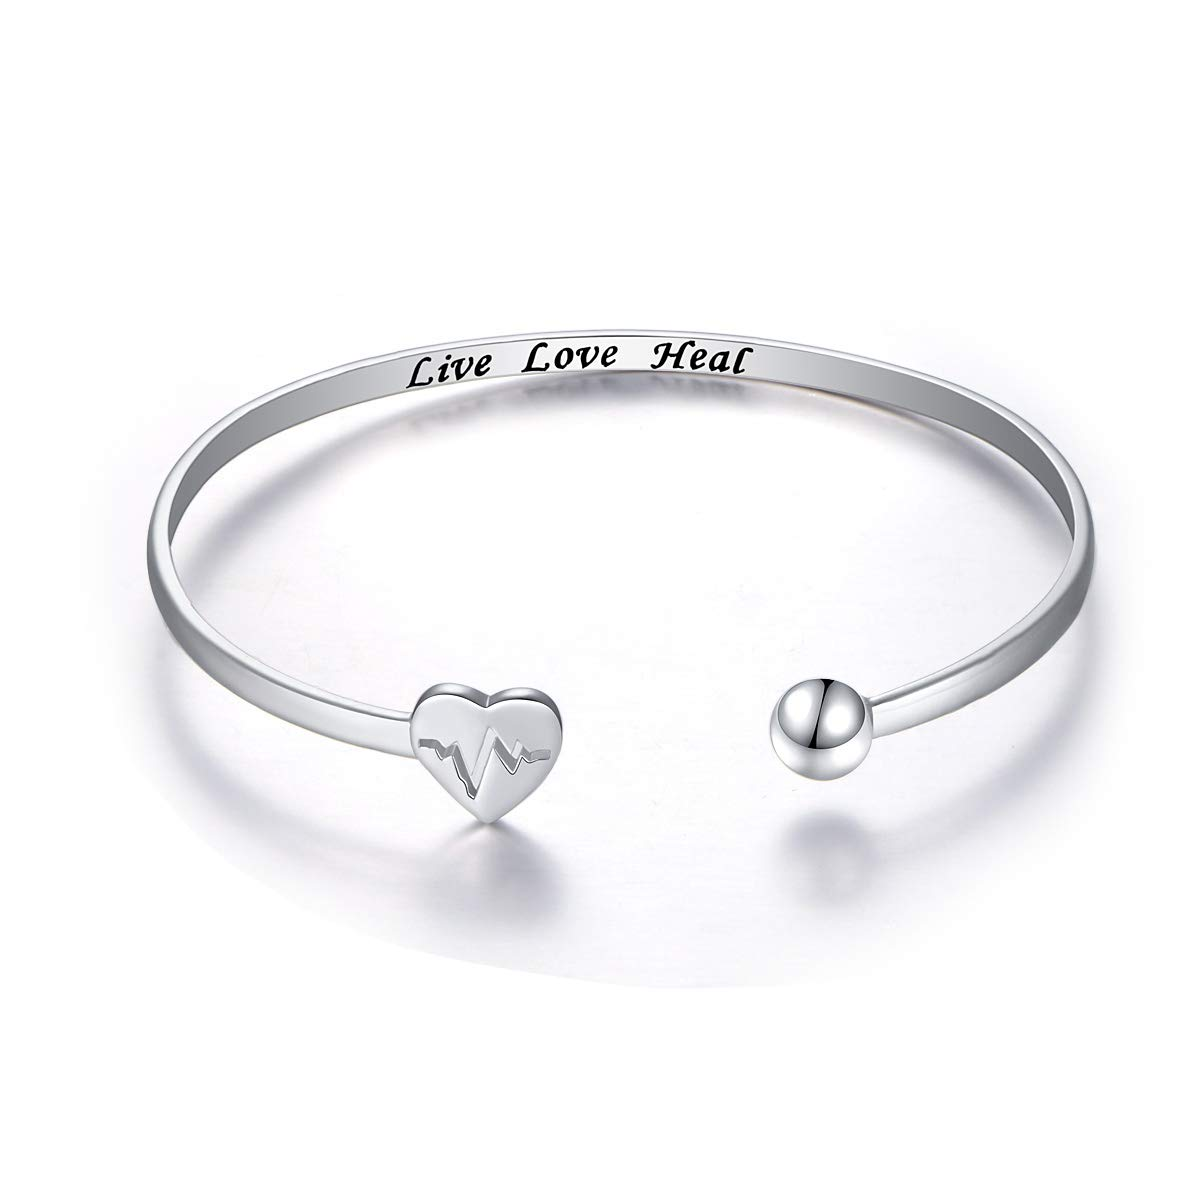 Amazon.com  S925 Sterling Silver Live Love Heal EKG Heartbeat Adjustable  Open Cuff Heart Bangle Bracelet for Nurse Doctor Medical Student Graduation  Gift  ... a8f688d51